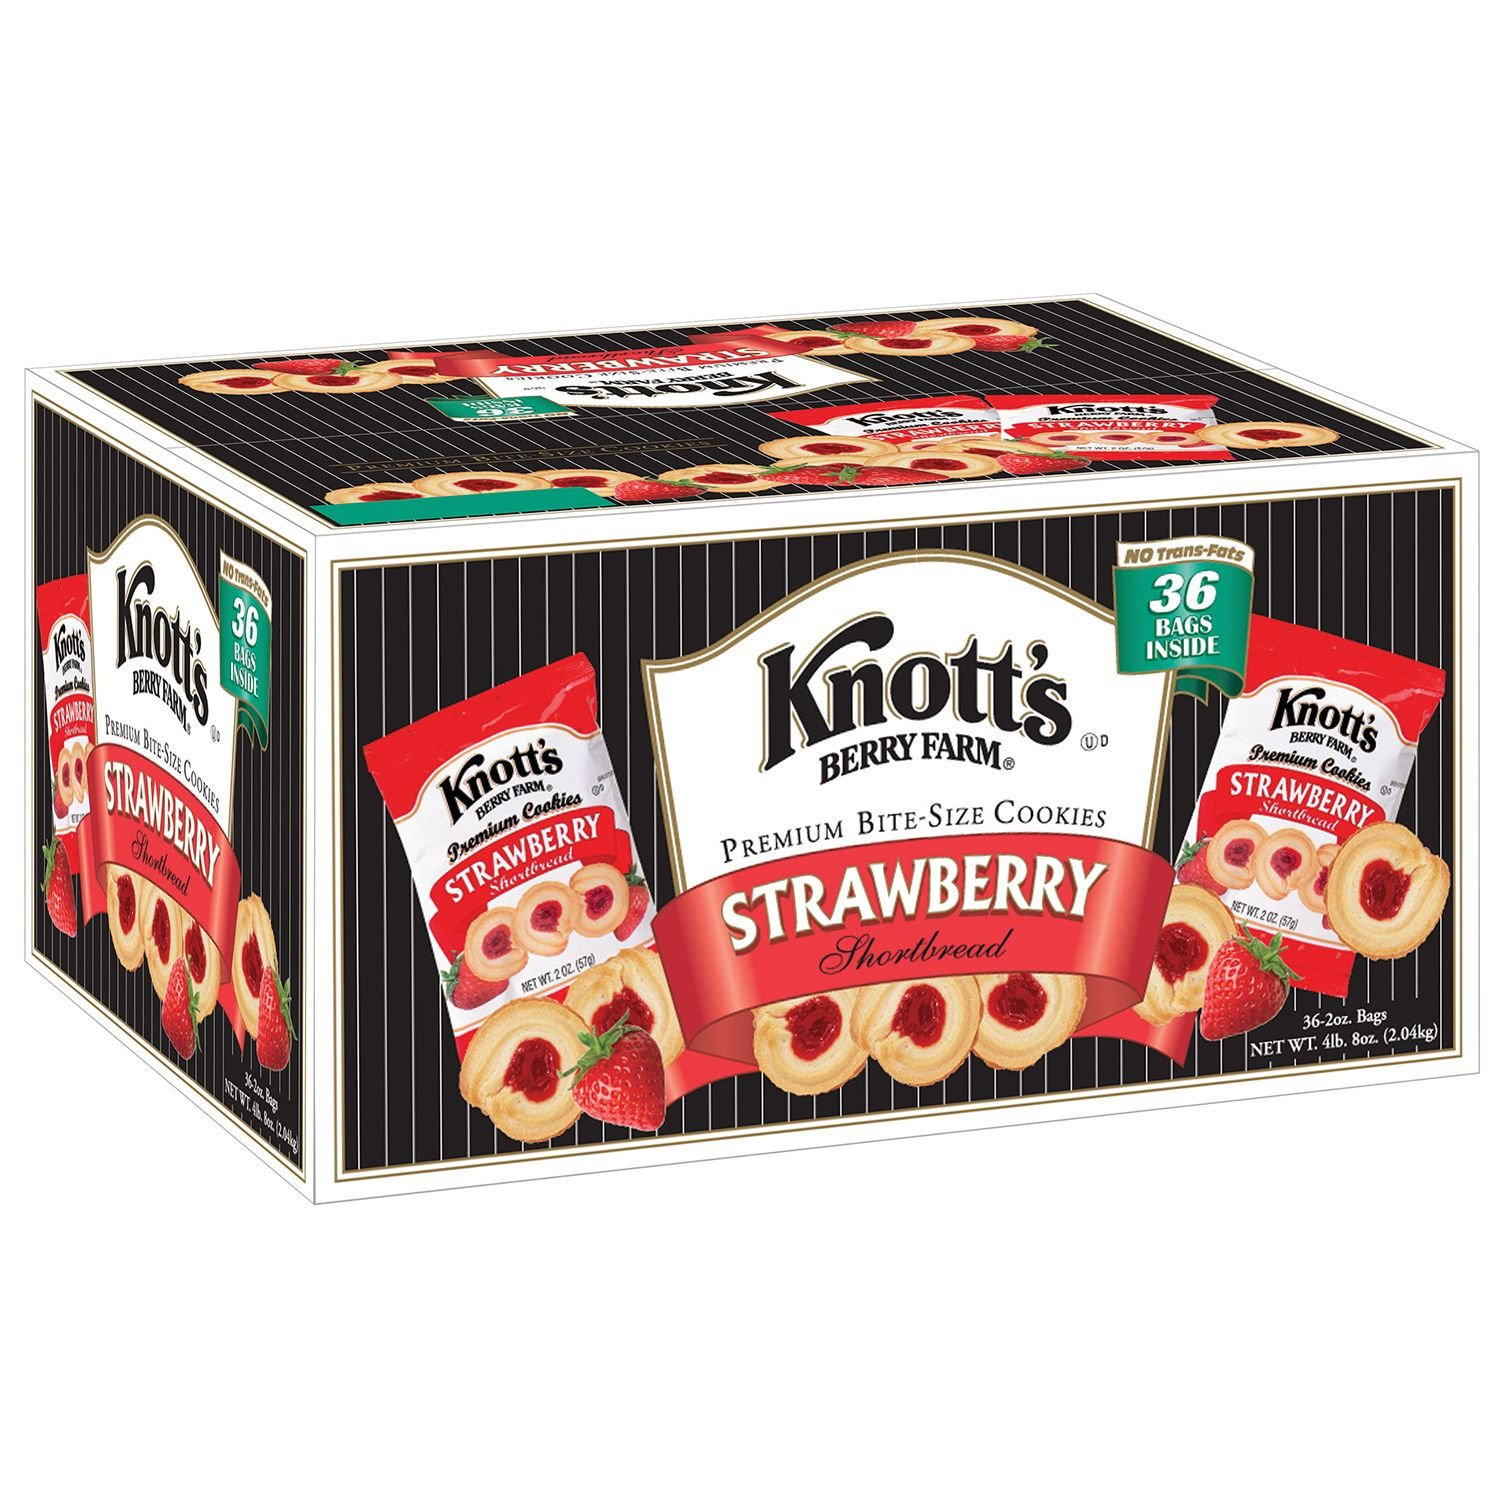 Knott's Berry Farm Strawberry Shortbread Cookies - 36 ct. (pack of 6) by Knott's Berry Farm